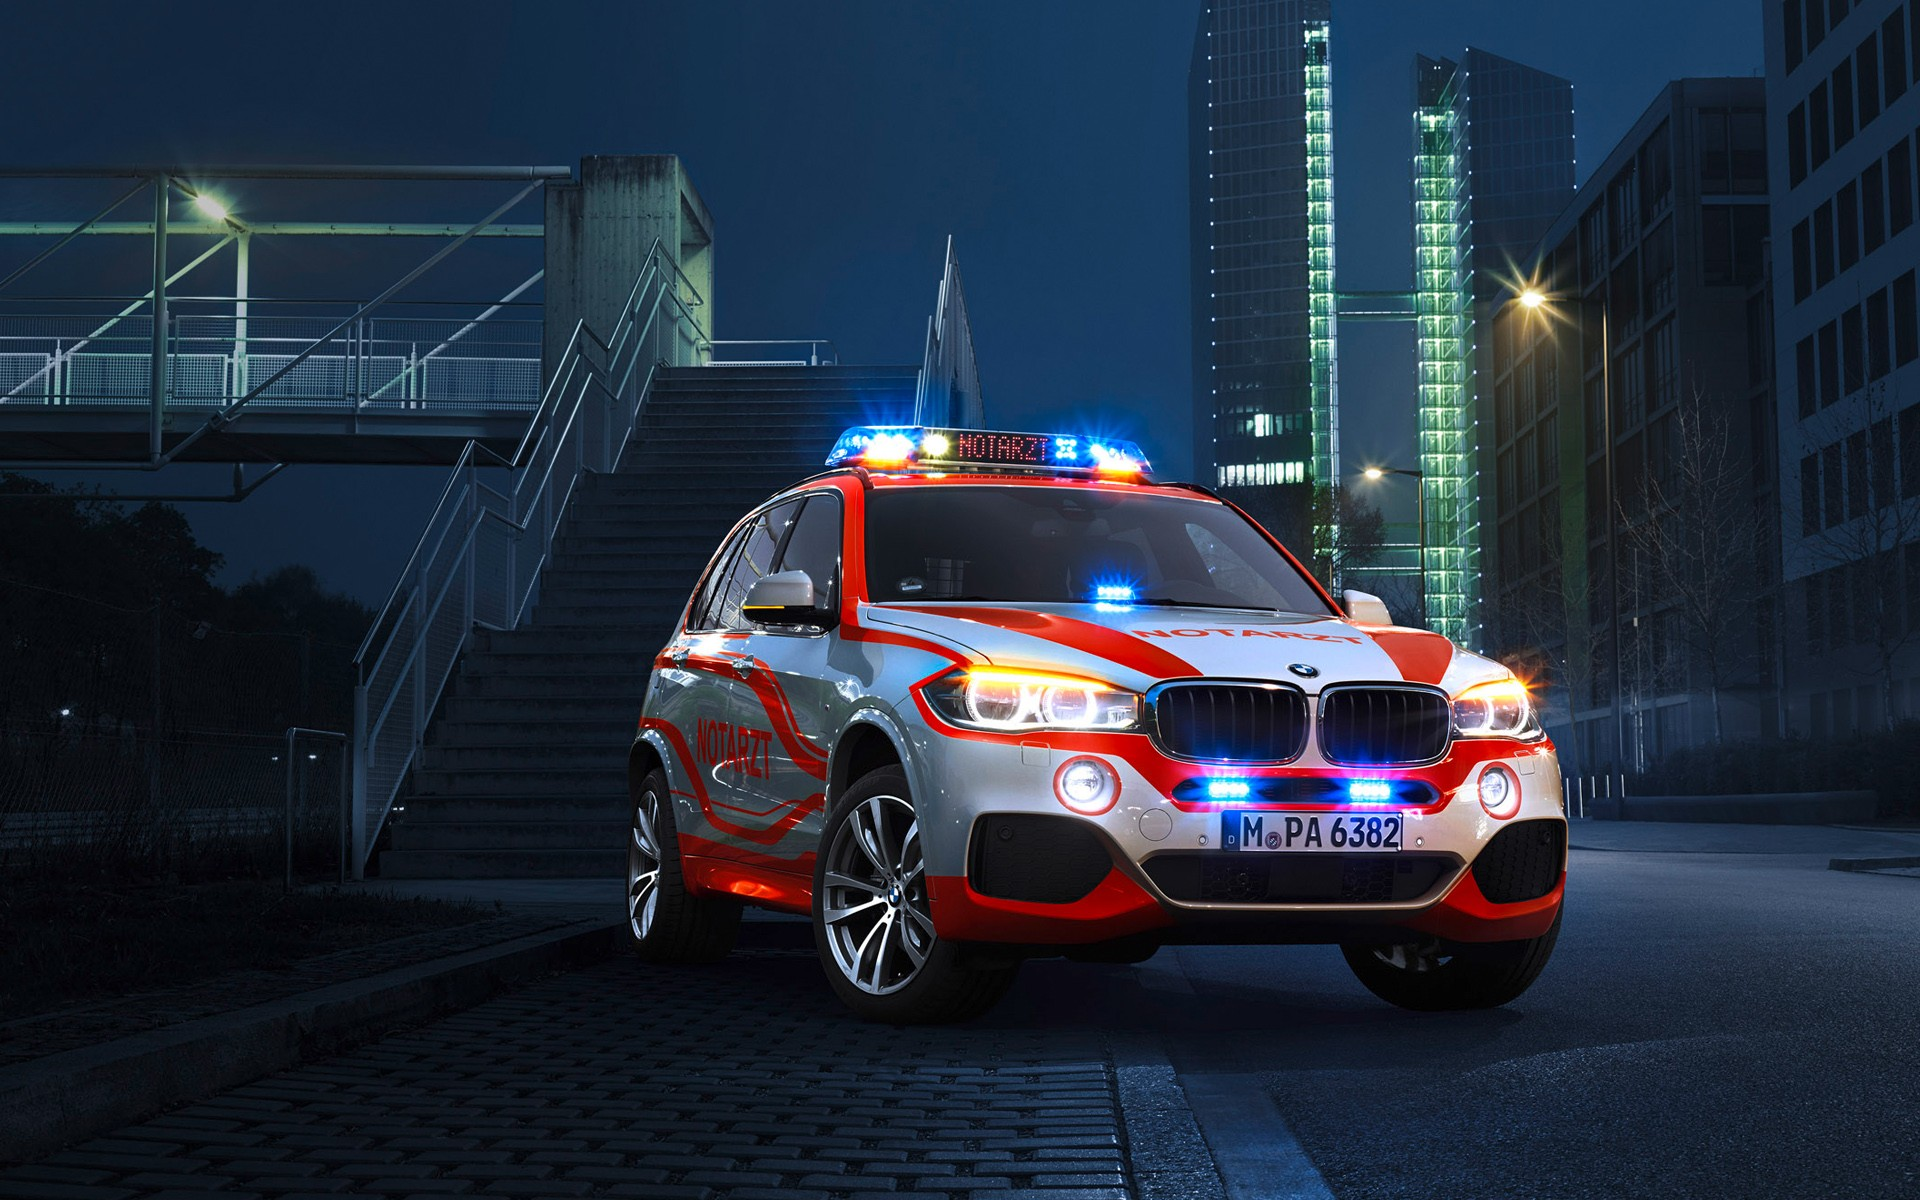 Bmw X3 Paramedic Vehicle Wallpaper Hd Car Wallpapers